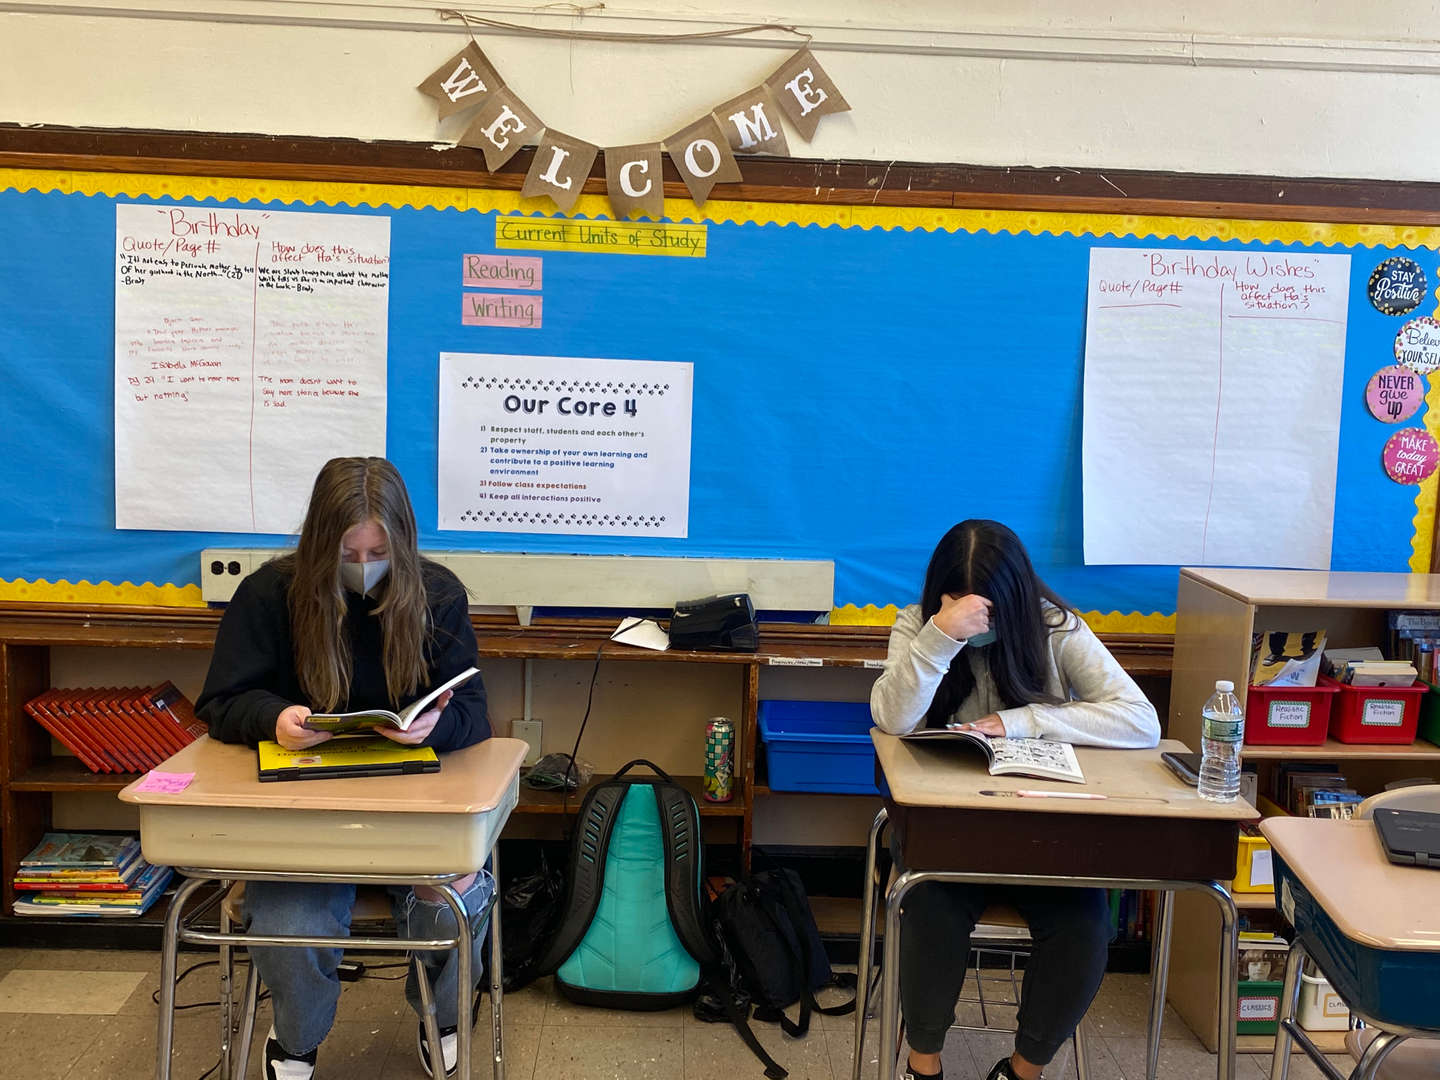 Two students wearing masks are shown reading books at their desks